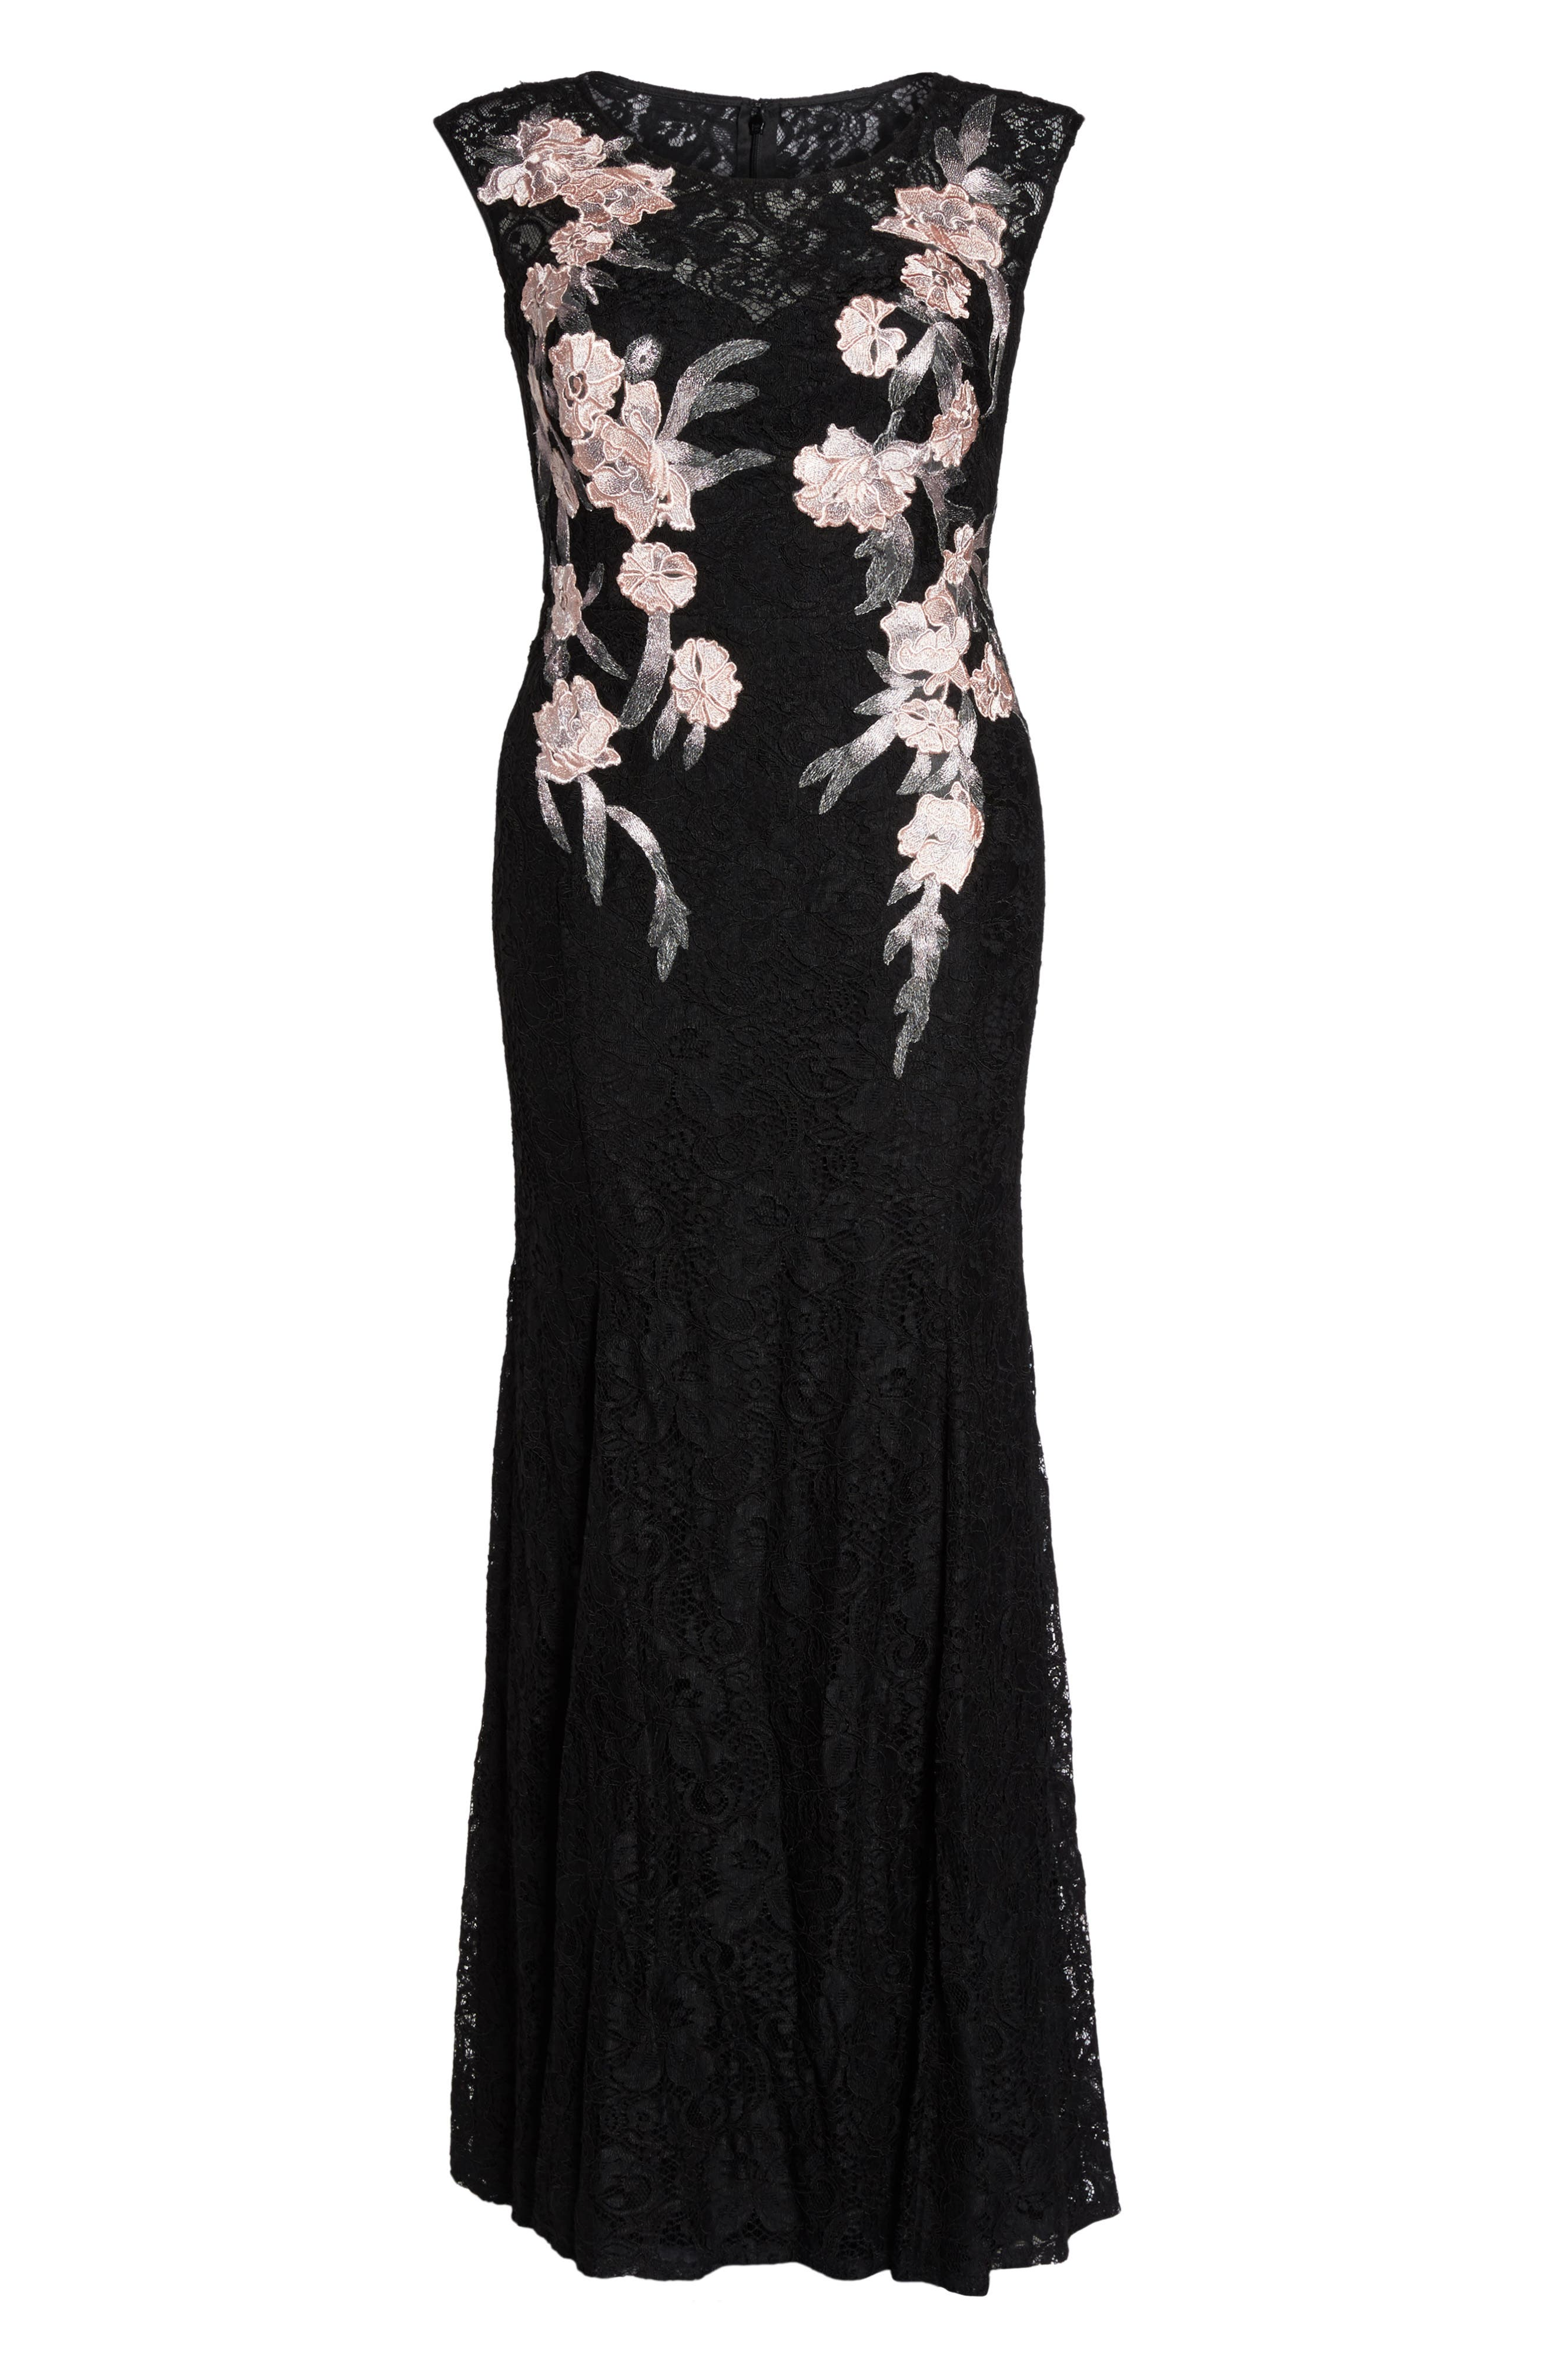 Floral Embroidered Lace Gown,                             Alternate thumbnail 6, color,                             Black/ Blush